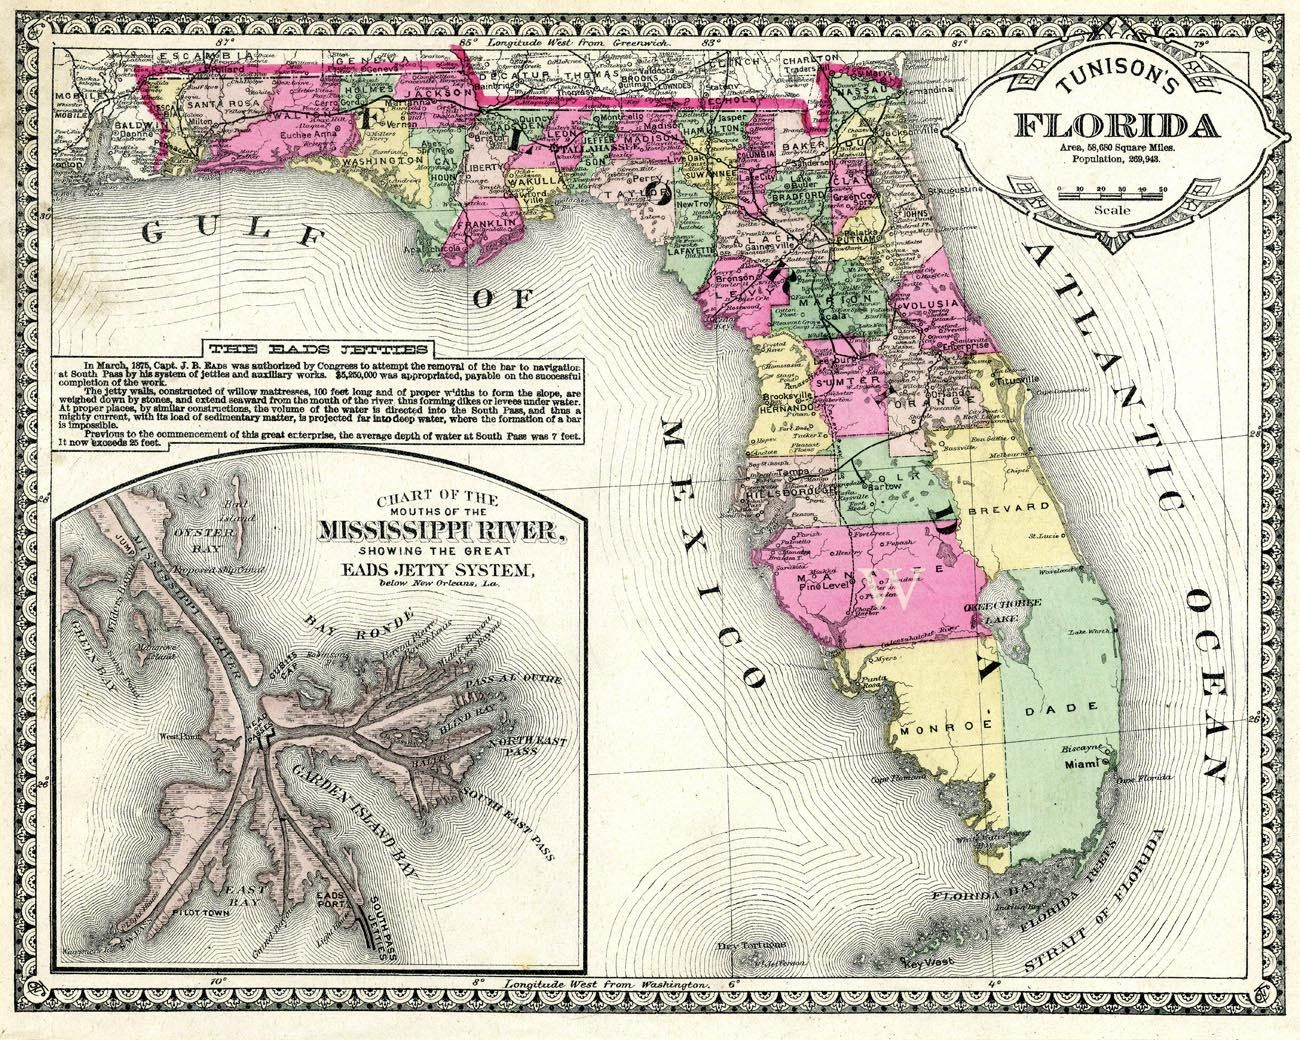 Map 0f Florida.Vintage Map Of Florida And Mississippi Delta From The 1890s Large